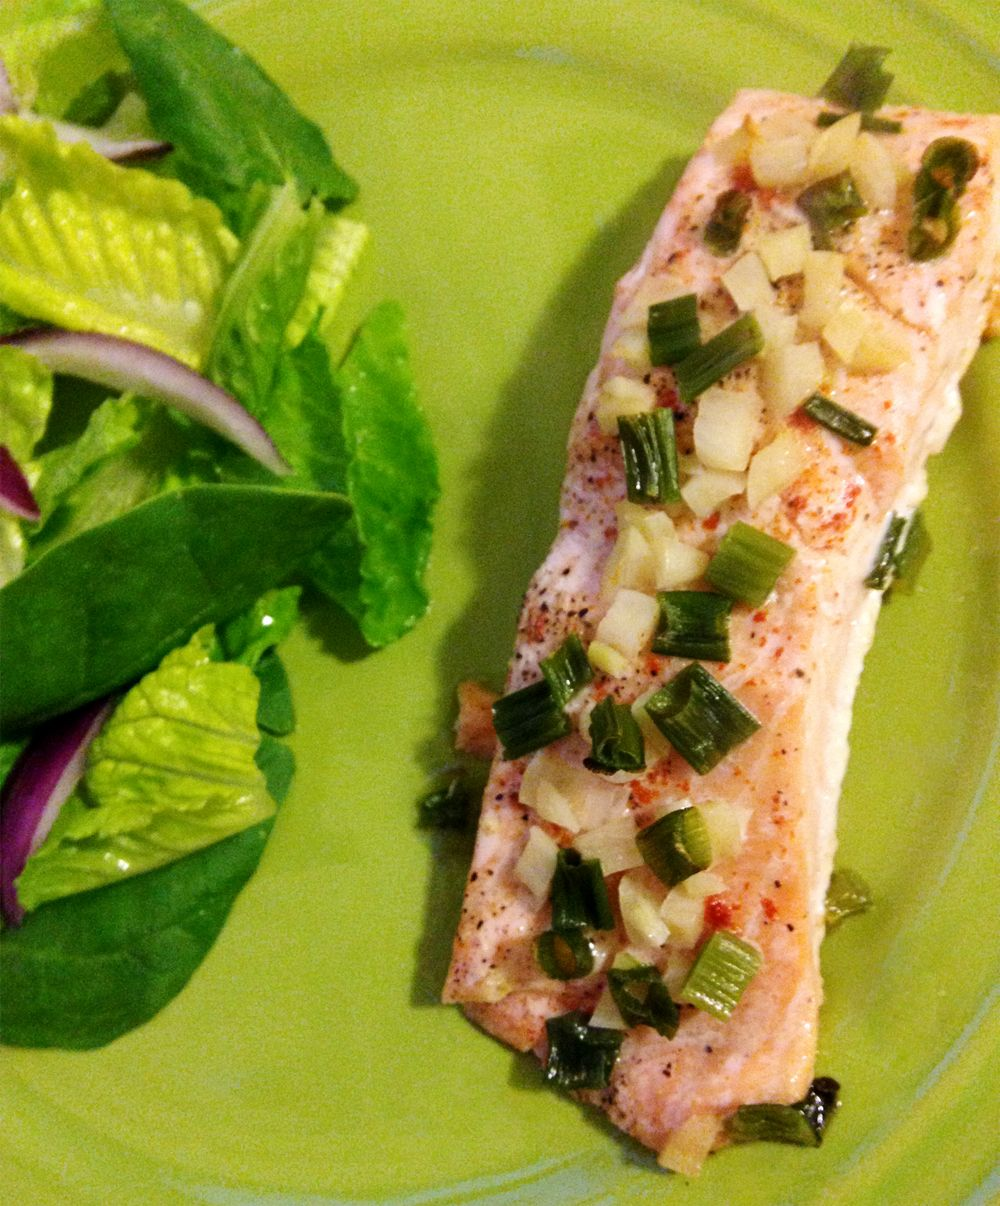 #Candida Friendly Baked Garlic And Onion Salmon Recipe